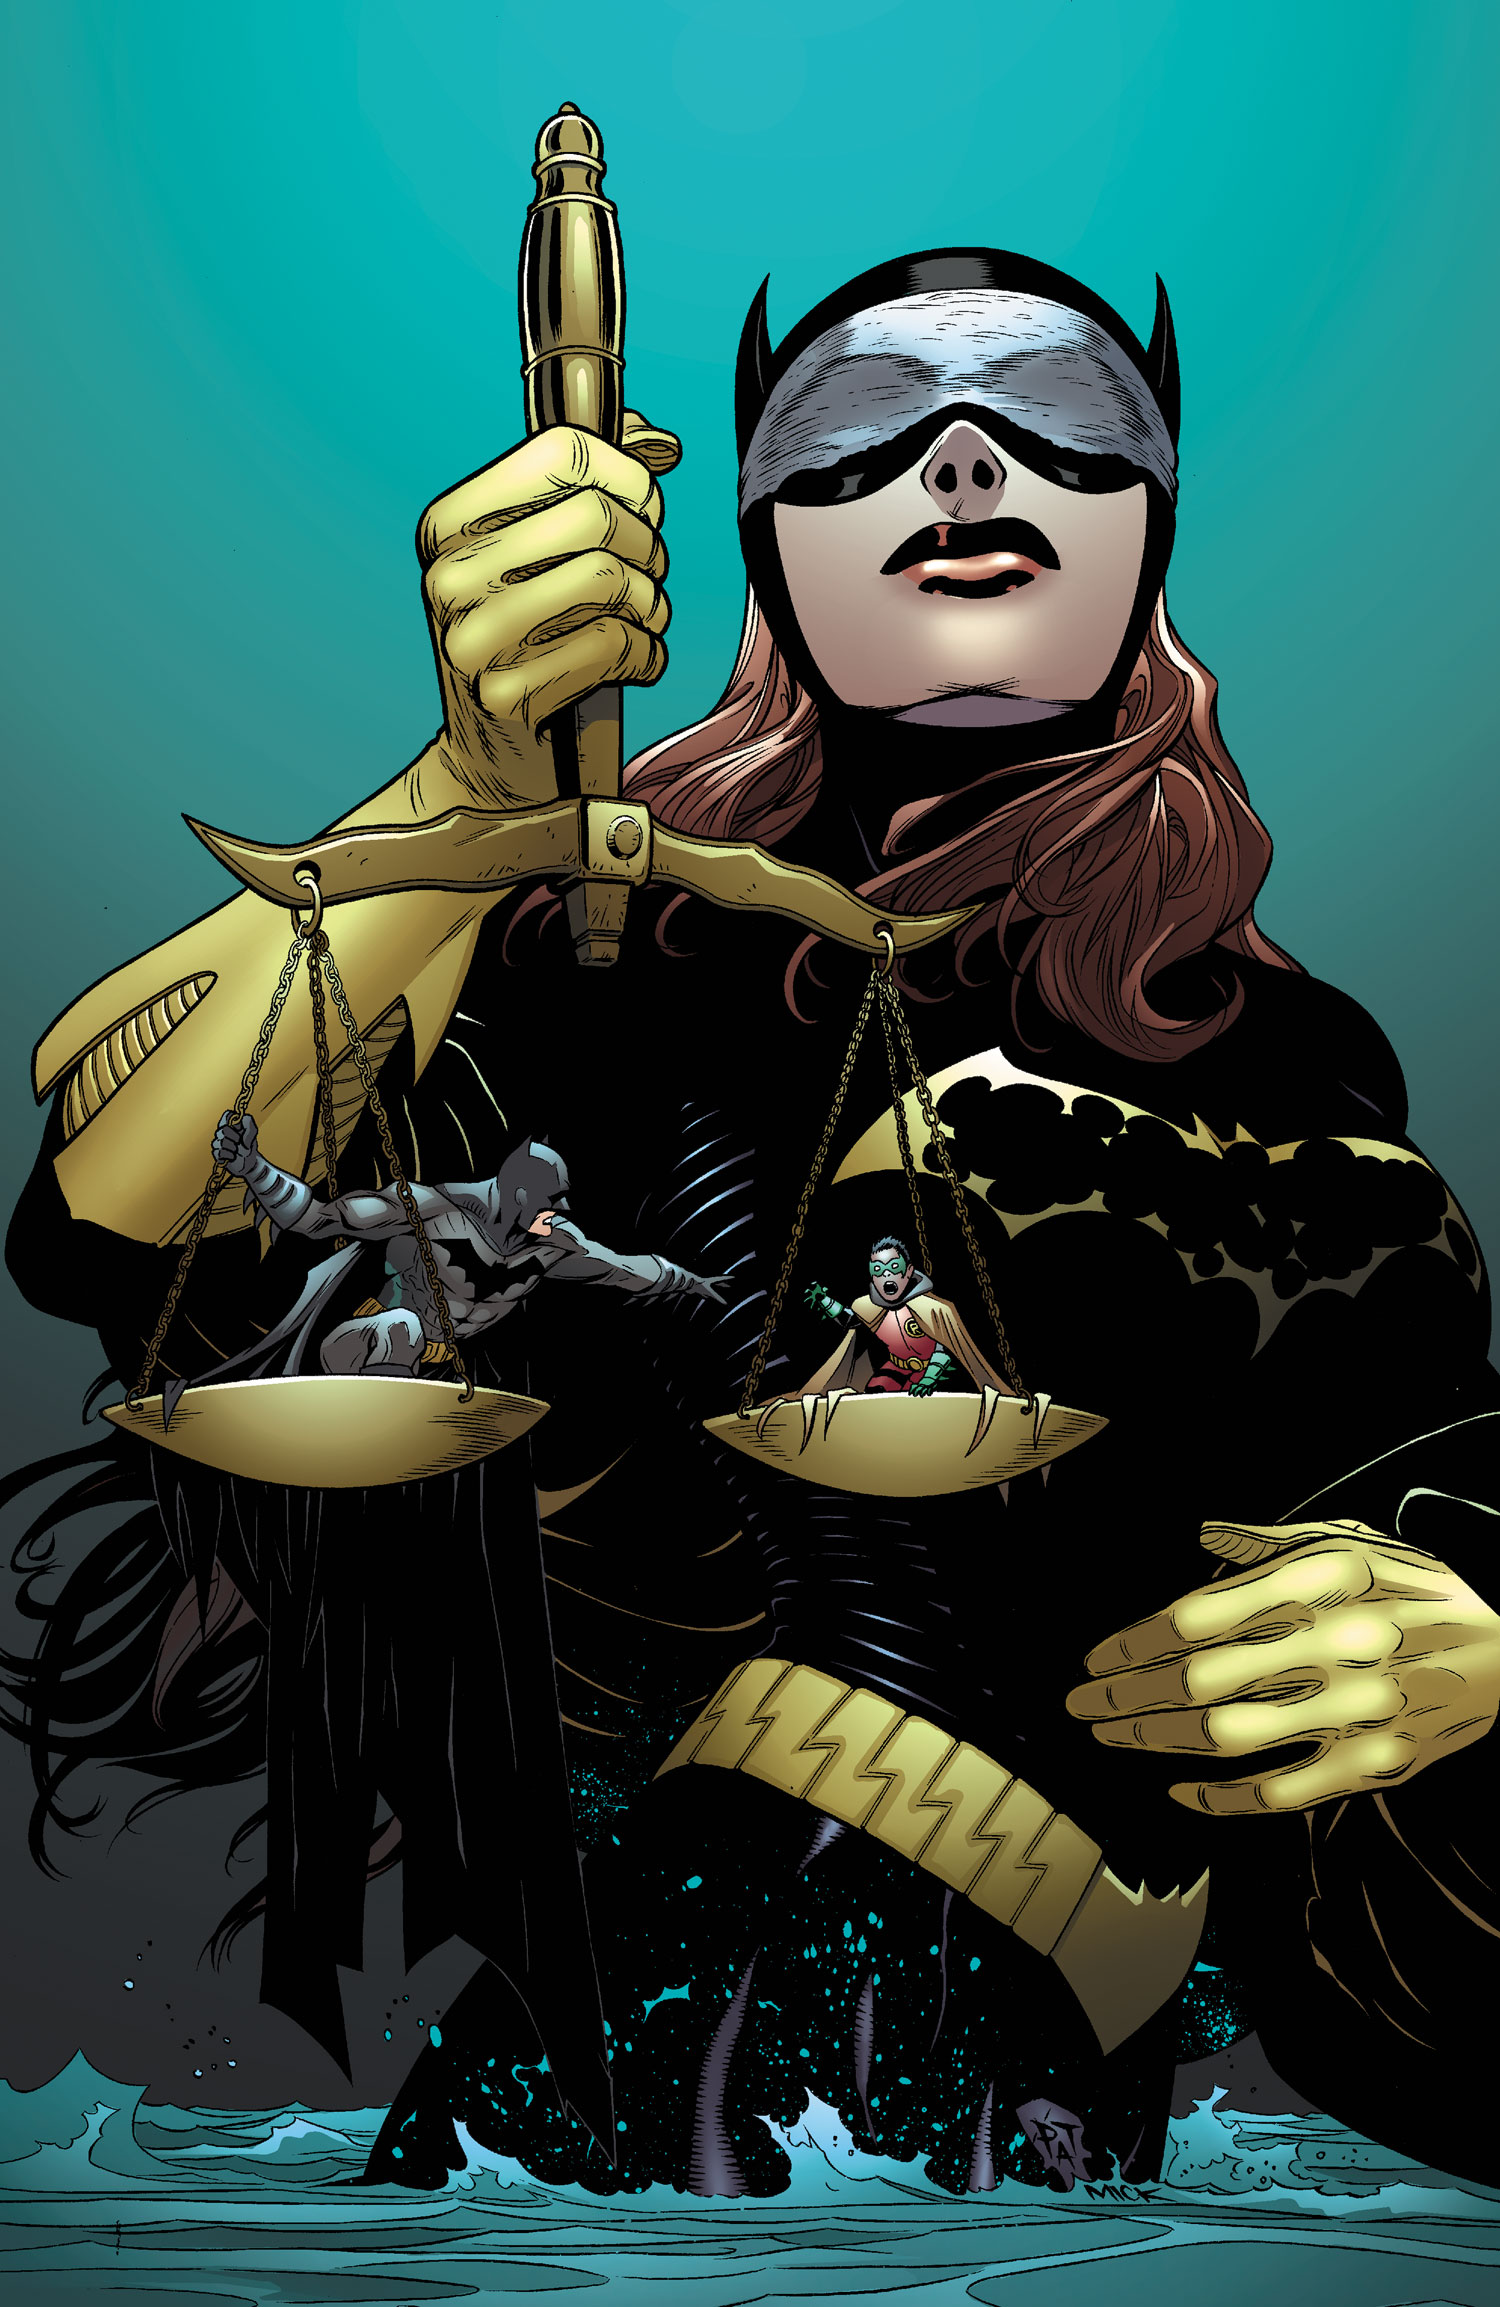 Batgirl Defeated And it's batgirl's turn at